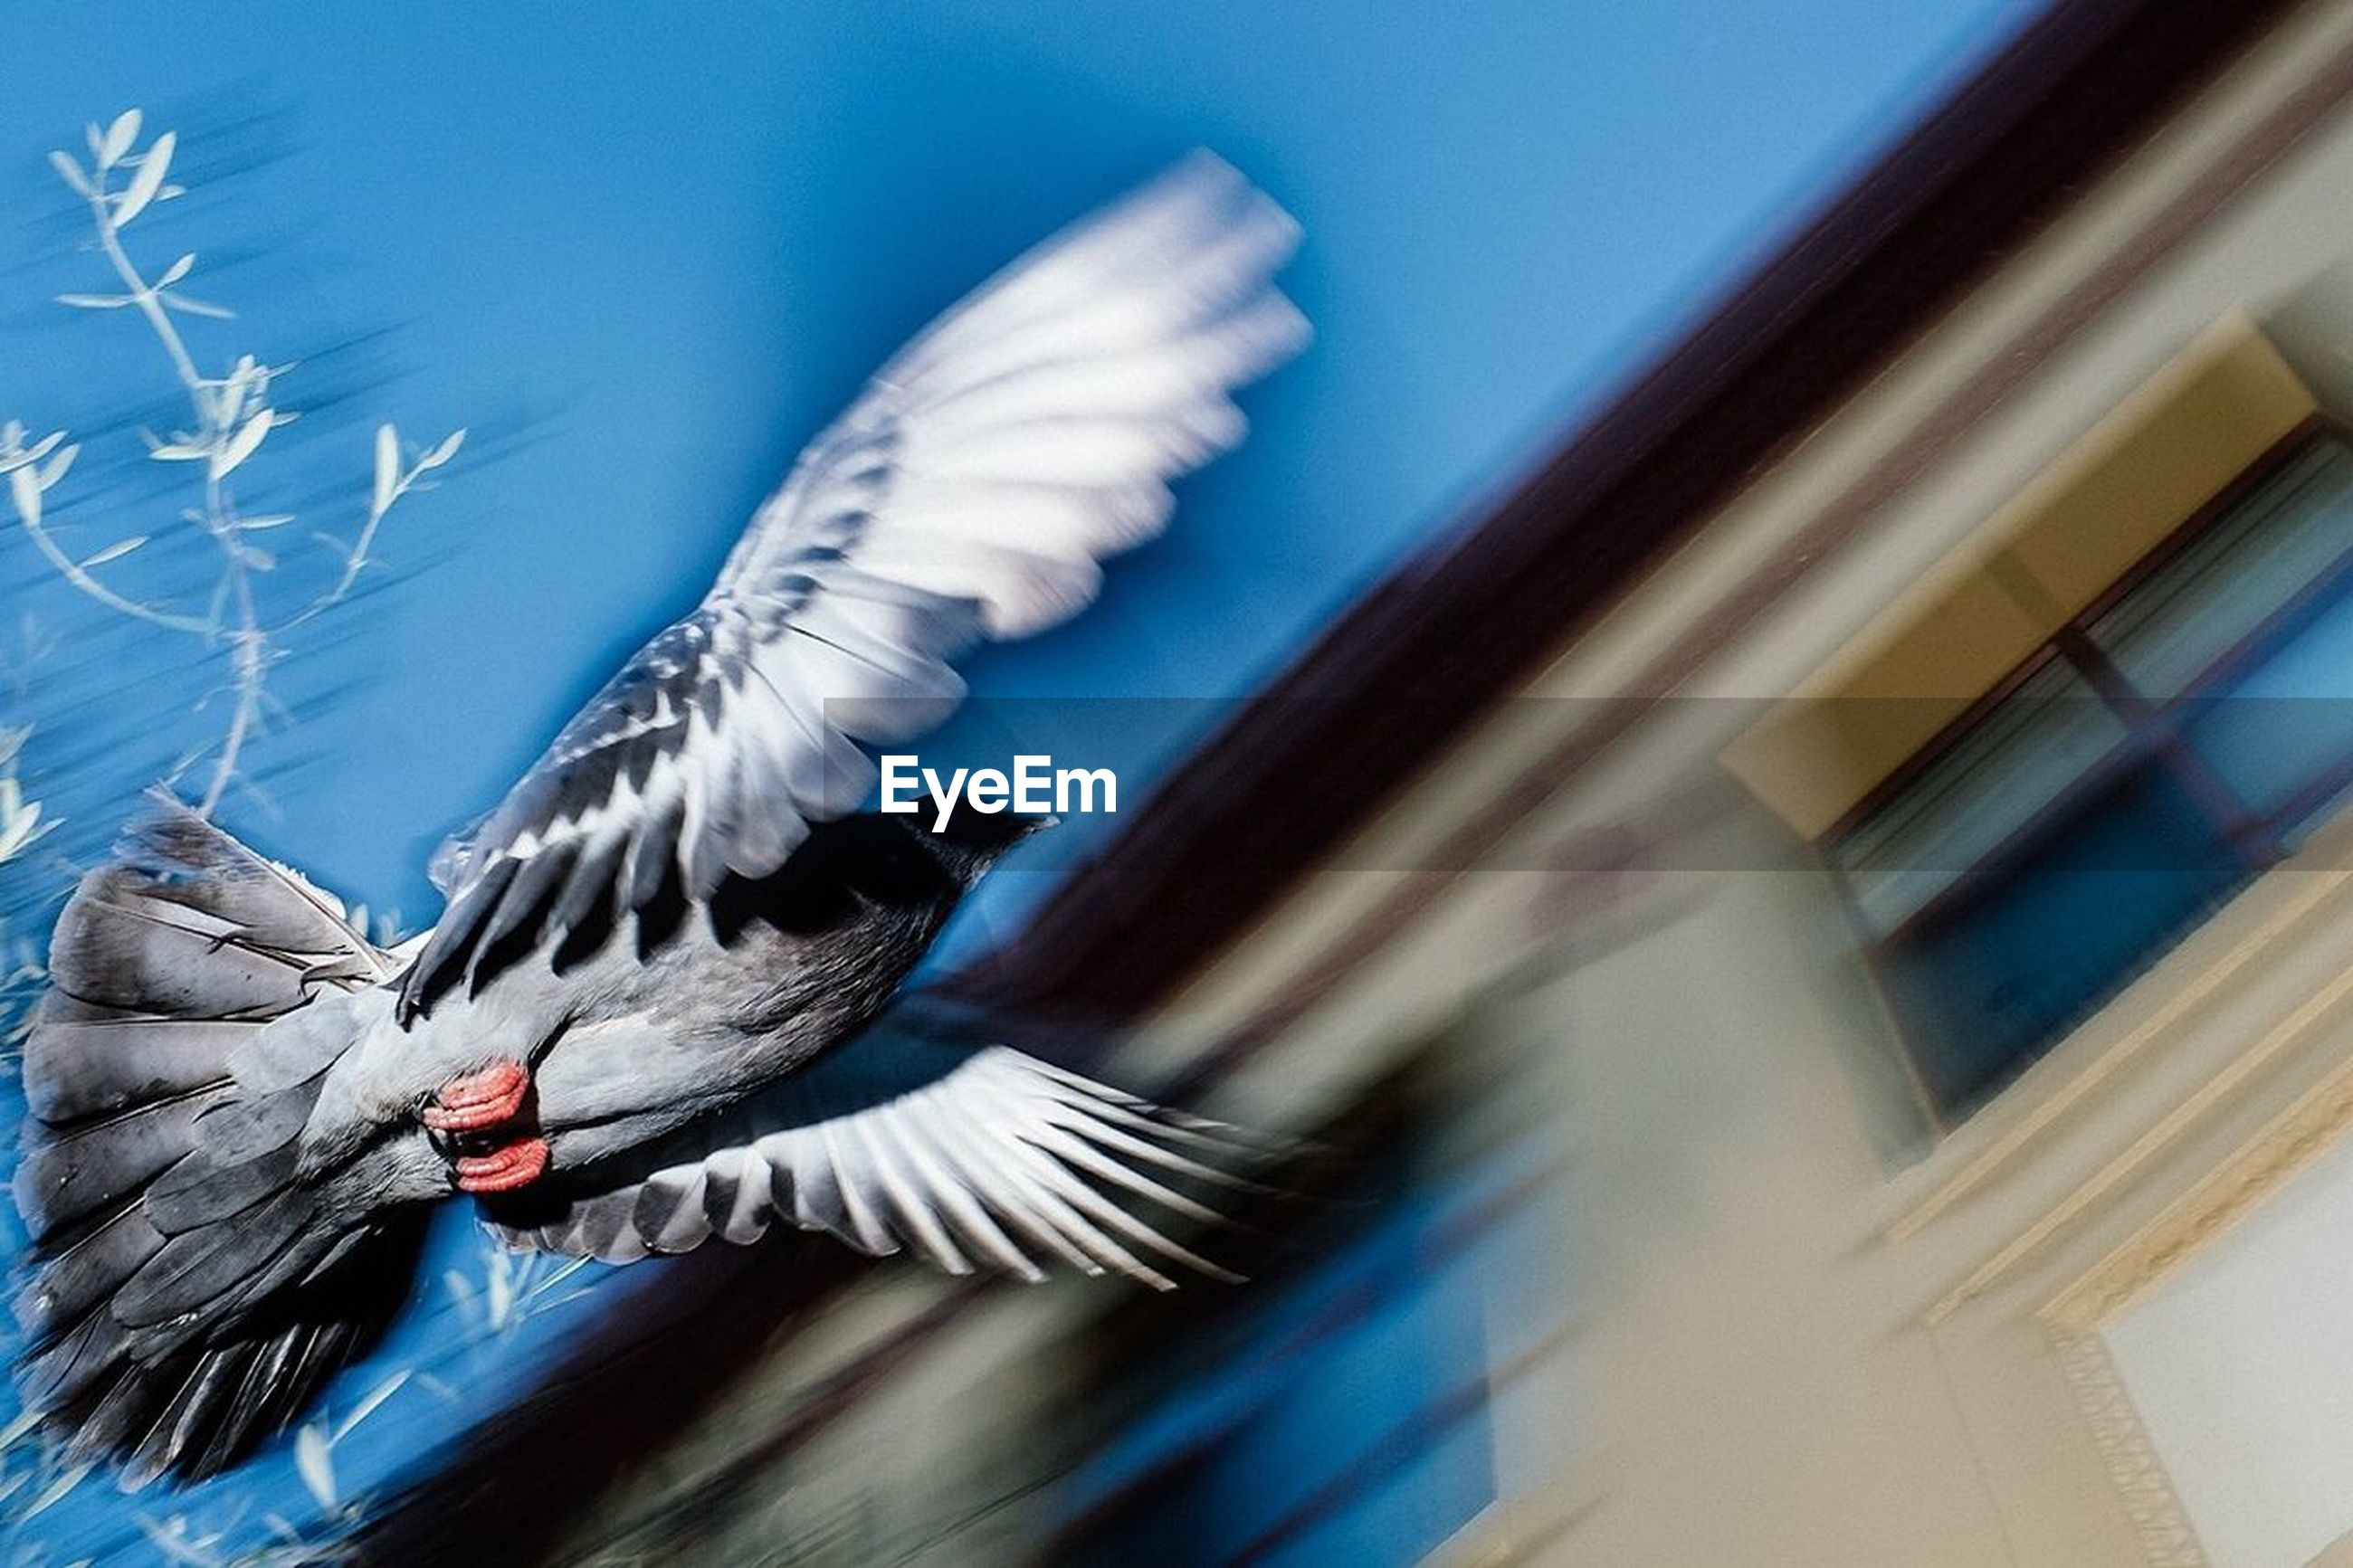 animal, animal themes, motion, blurred motion, animals in the wild, animal wildlife, bird, vertebrate, flying, spread wings, no people, one animal, day, nature, feather, selective focus, outdoors, blue, sky, low angle view, flapping